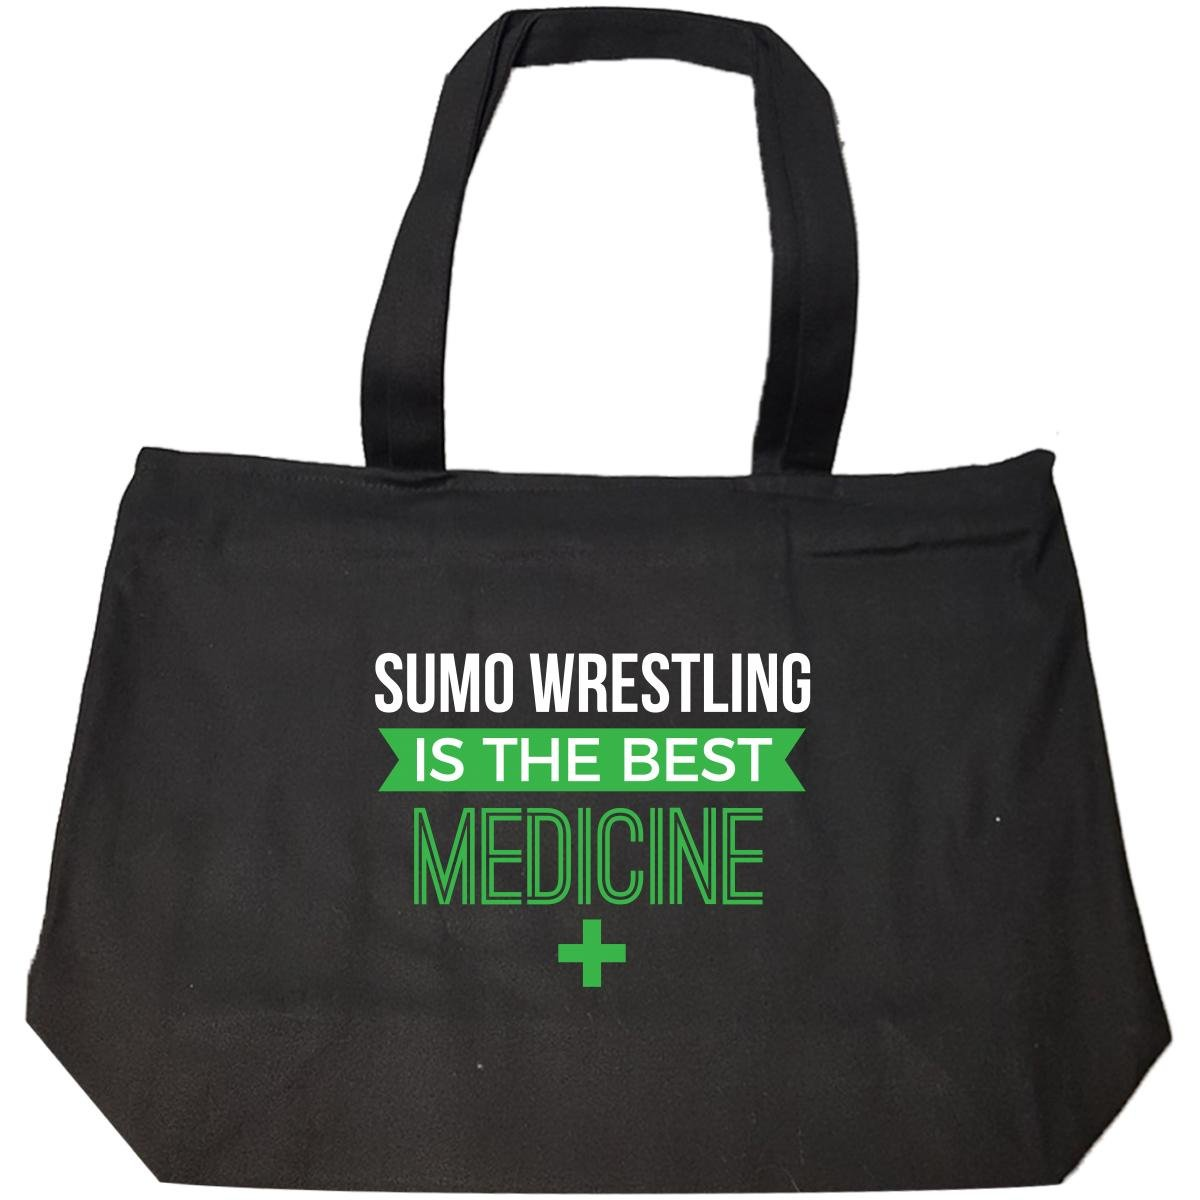 Sumo Wrestling Is The Best Medicine Favorite Sport Gift - Tote Bag With Zip by We Add Up